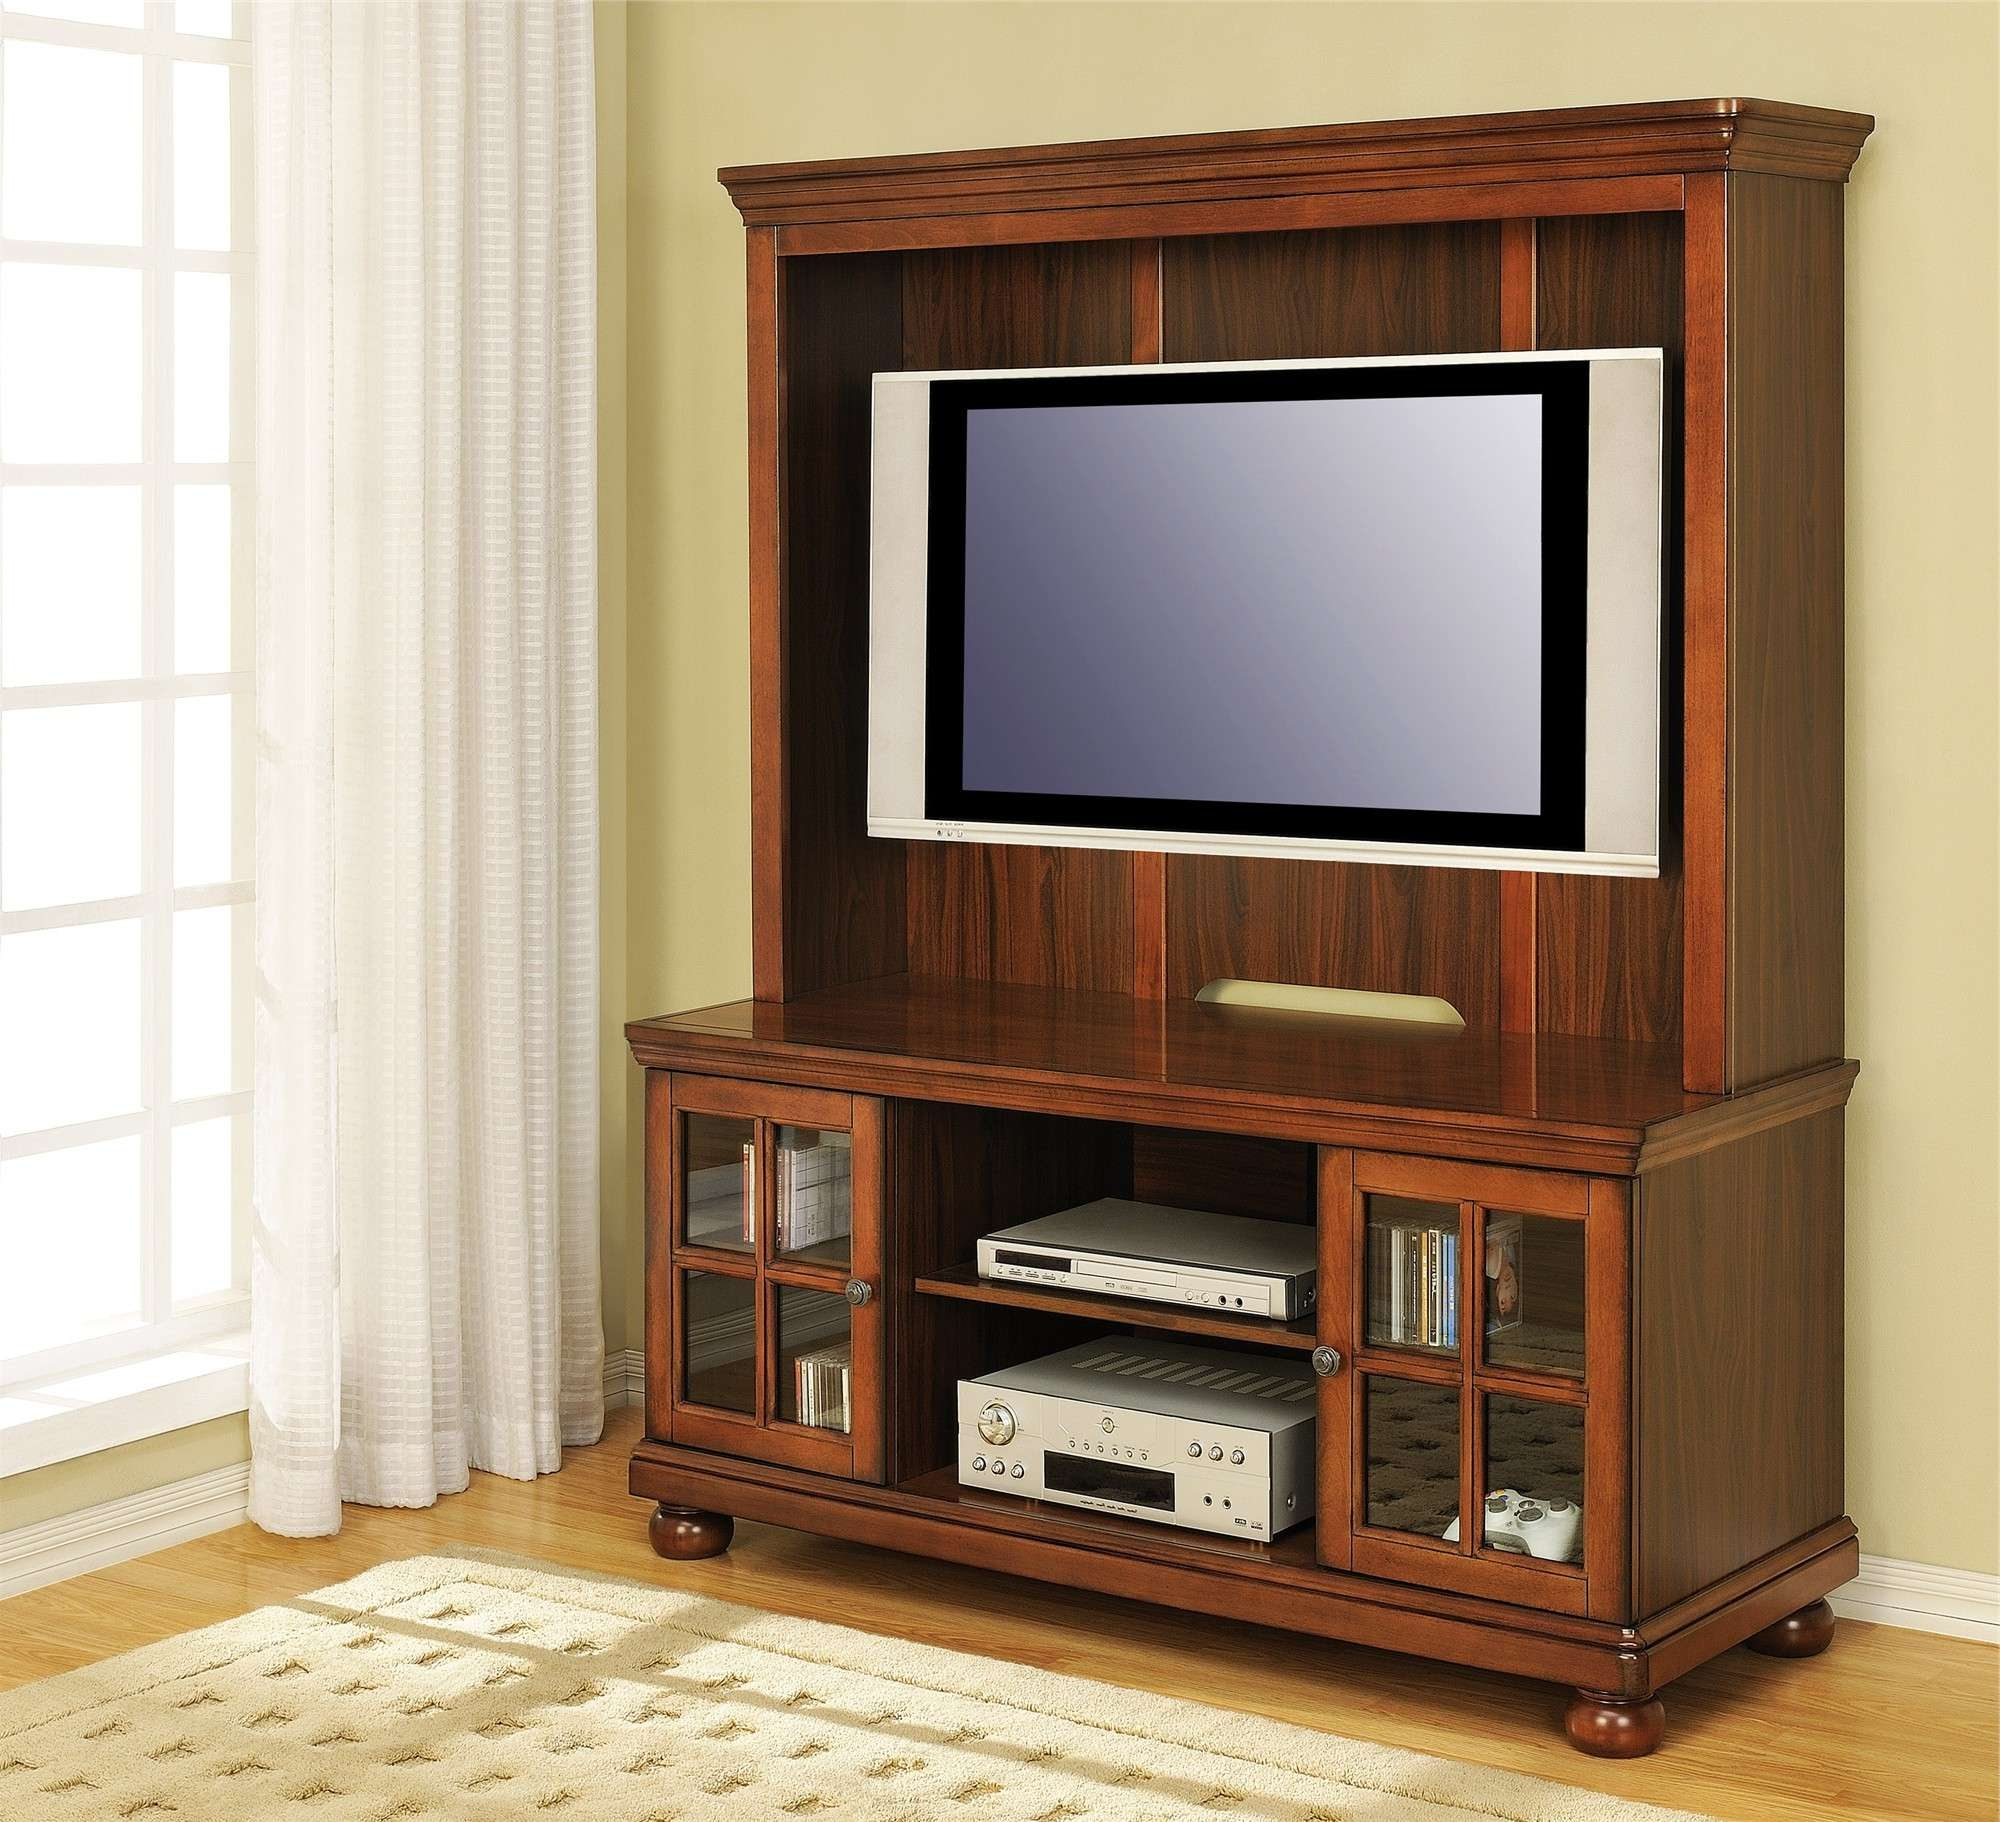 Modern Brown Oak Wood Media Cabinet With Mounted Tv Storage With Regard To Glass Corner Tv Stands For Flat Screen Tvs (View 14 of 15)